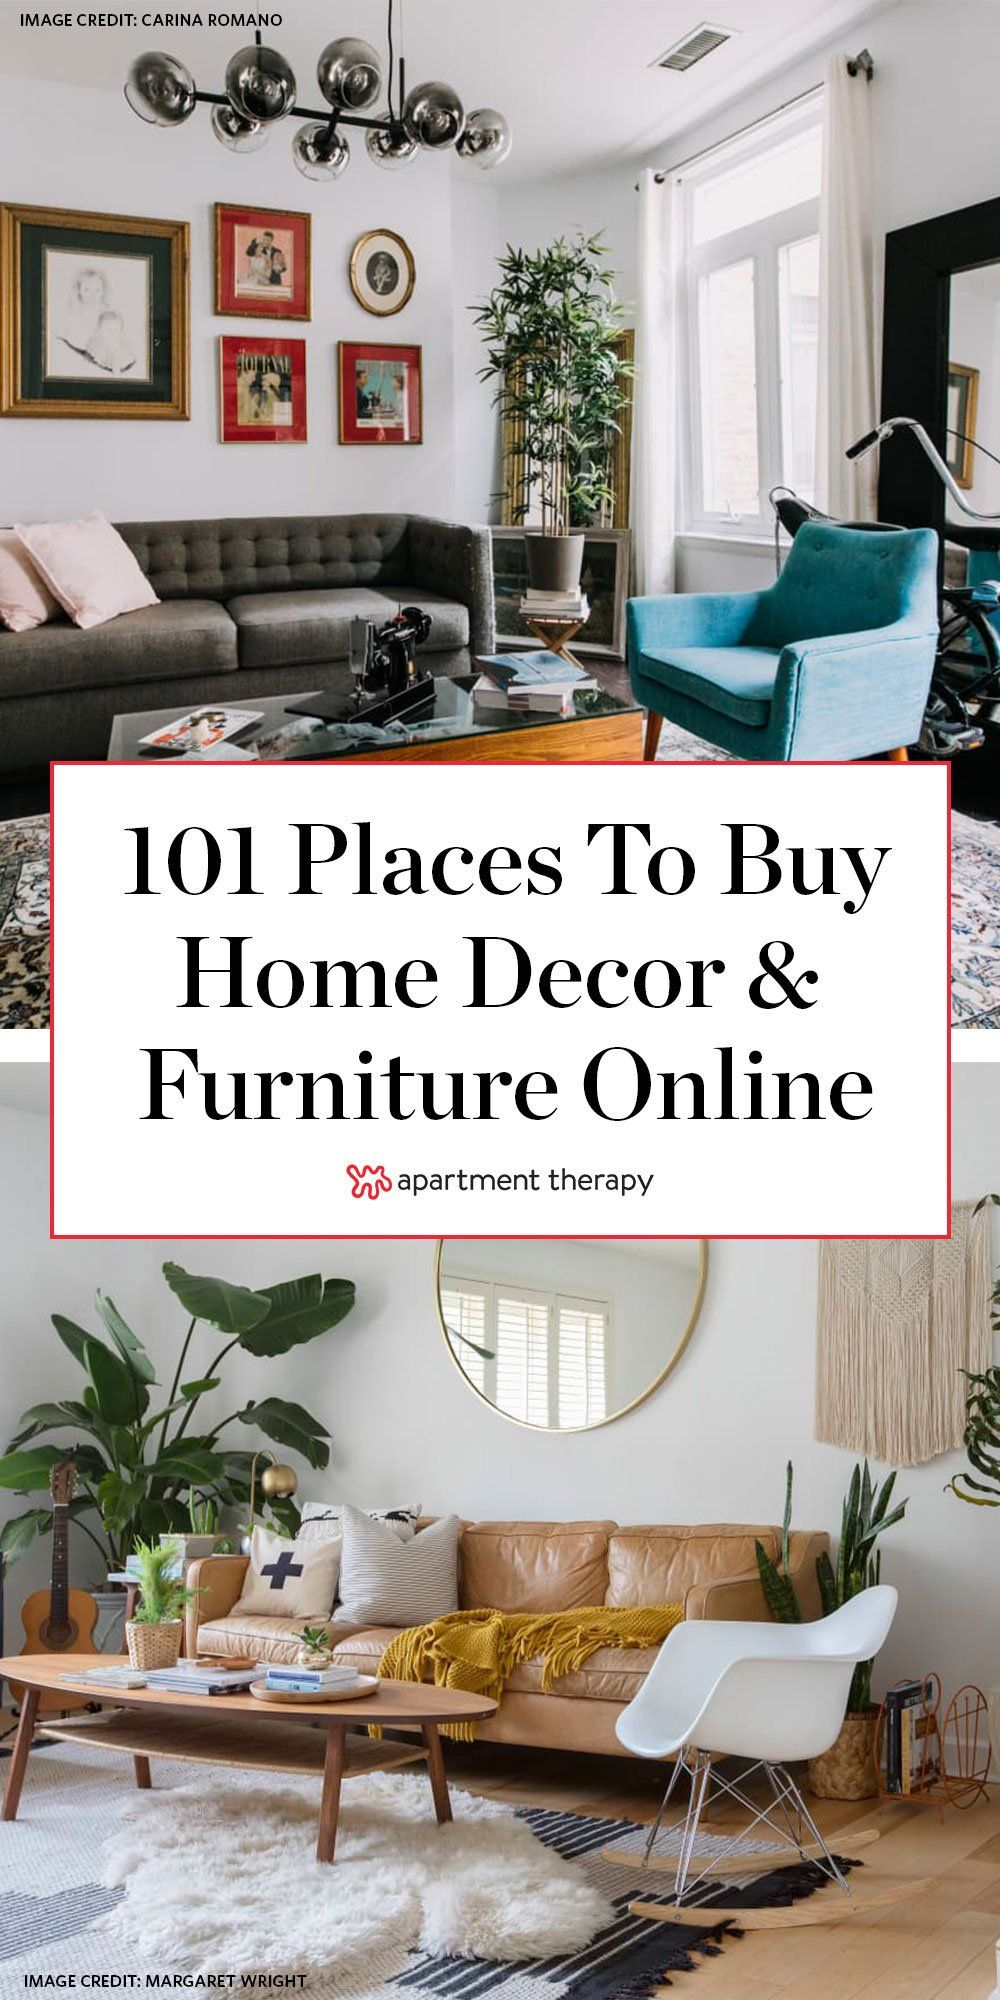 101 Places To Buy Furniture And Home Decor With Images Home